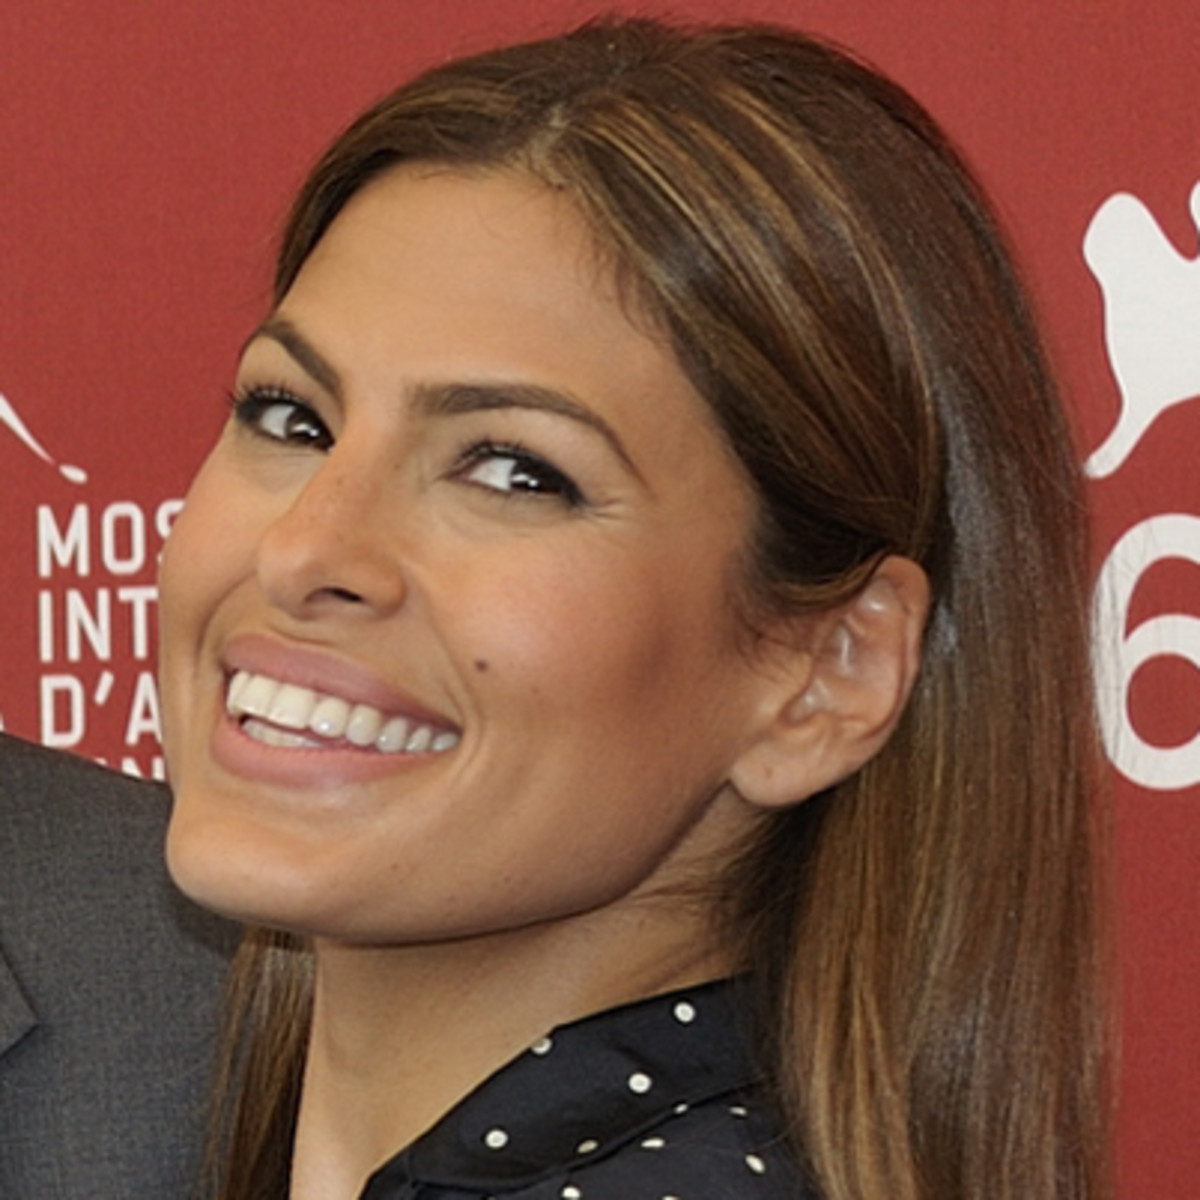 Famous People Named Ava intended for eva mendes - actress, film actor/film actress, film actress, model